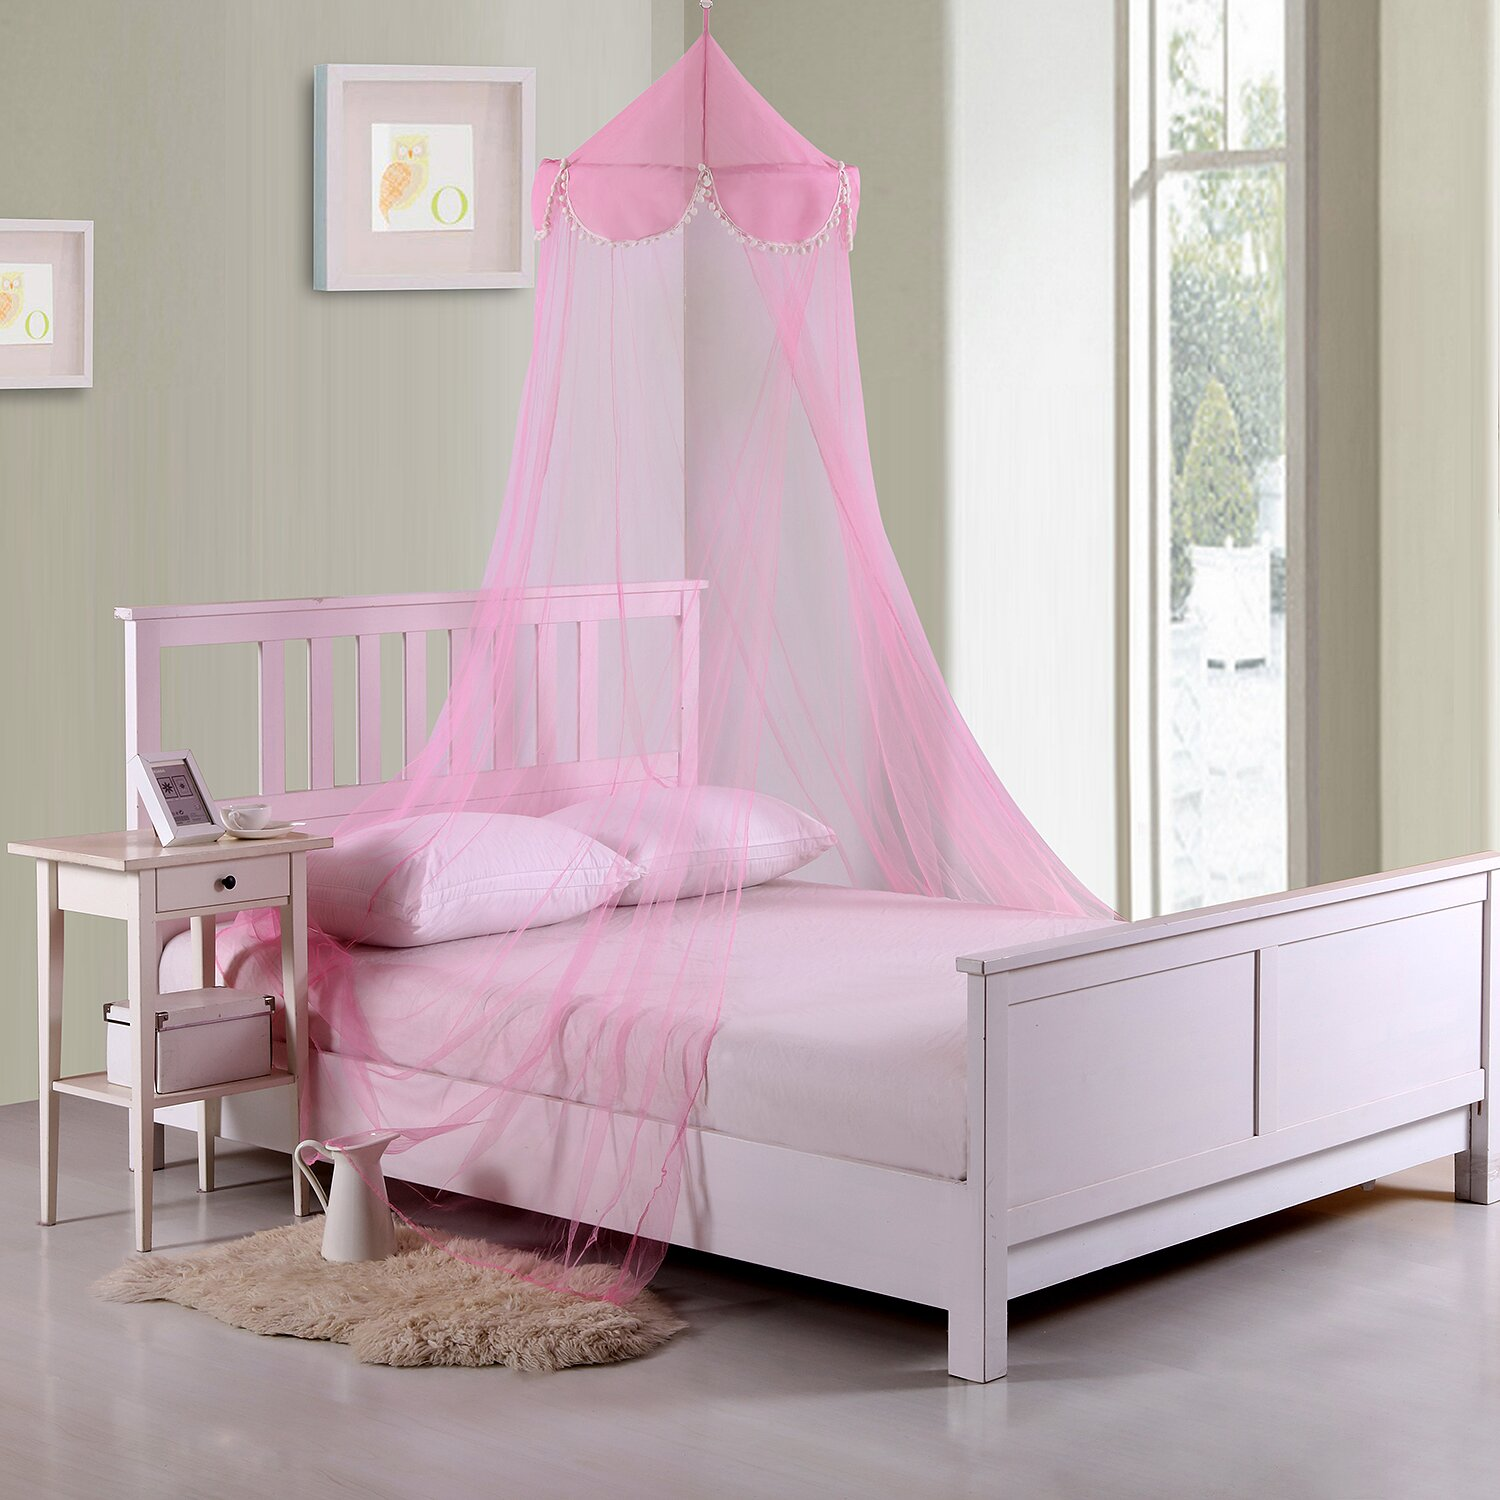 Casablanca kids pom pom kids collapsible hoop sheer bed - Pictures of canopy beds ...